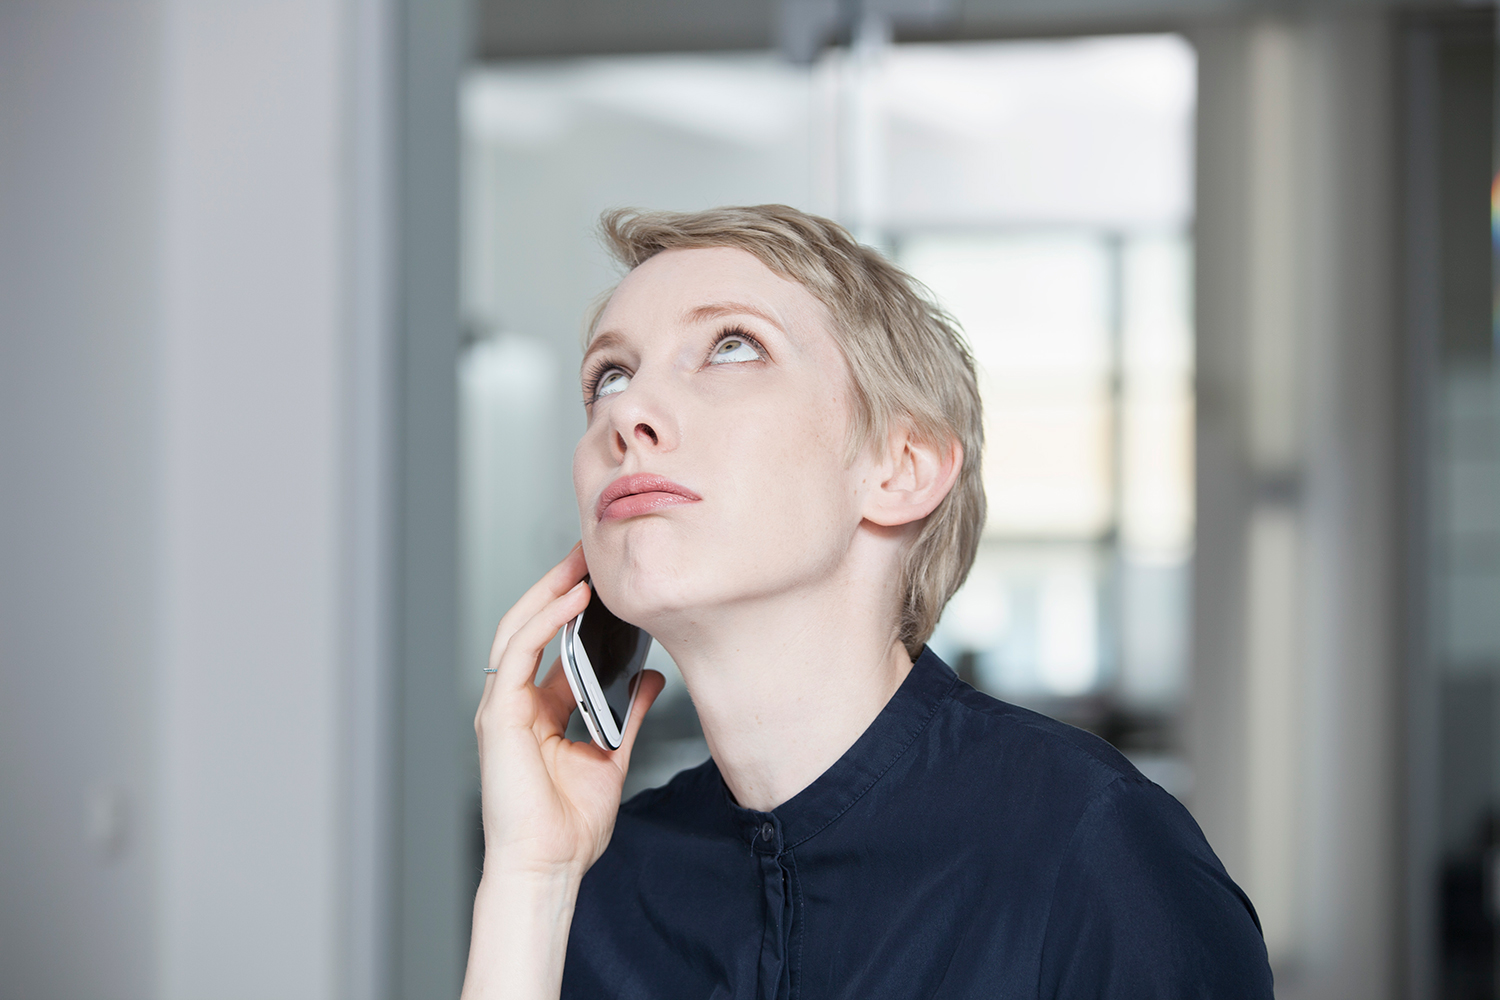 woman-angry-on-phone